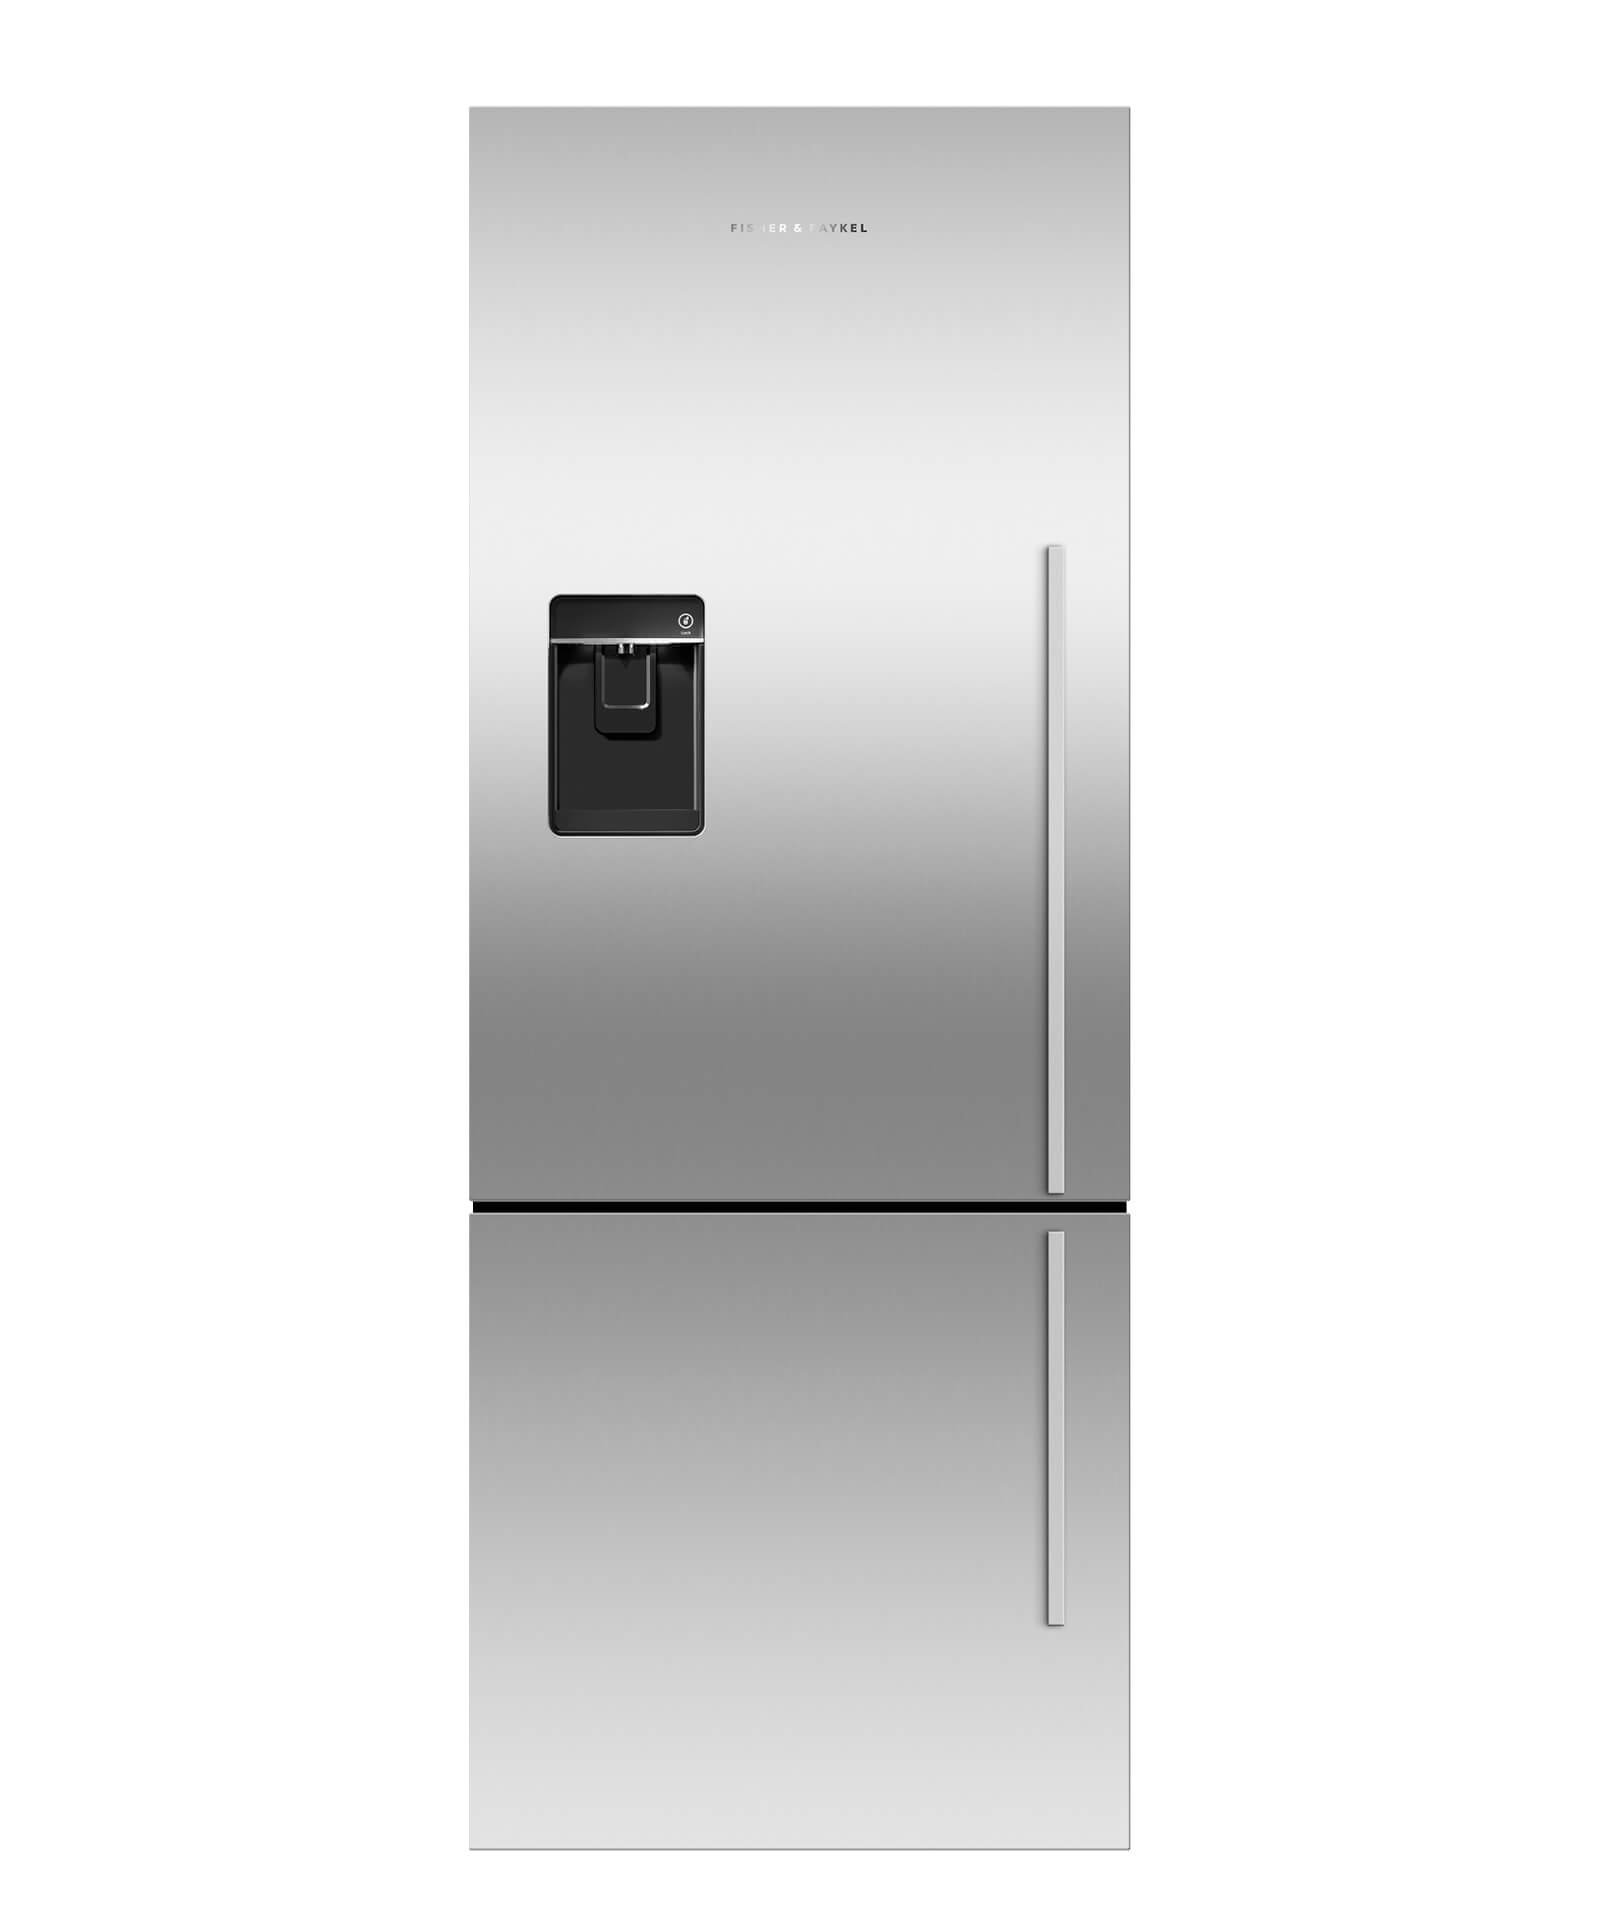 RF135BDLUX4_N - ActiveSmart™ Fridge - 13.5 cu. ft. counter depth bottom freezer with ice & water - 25062